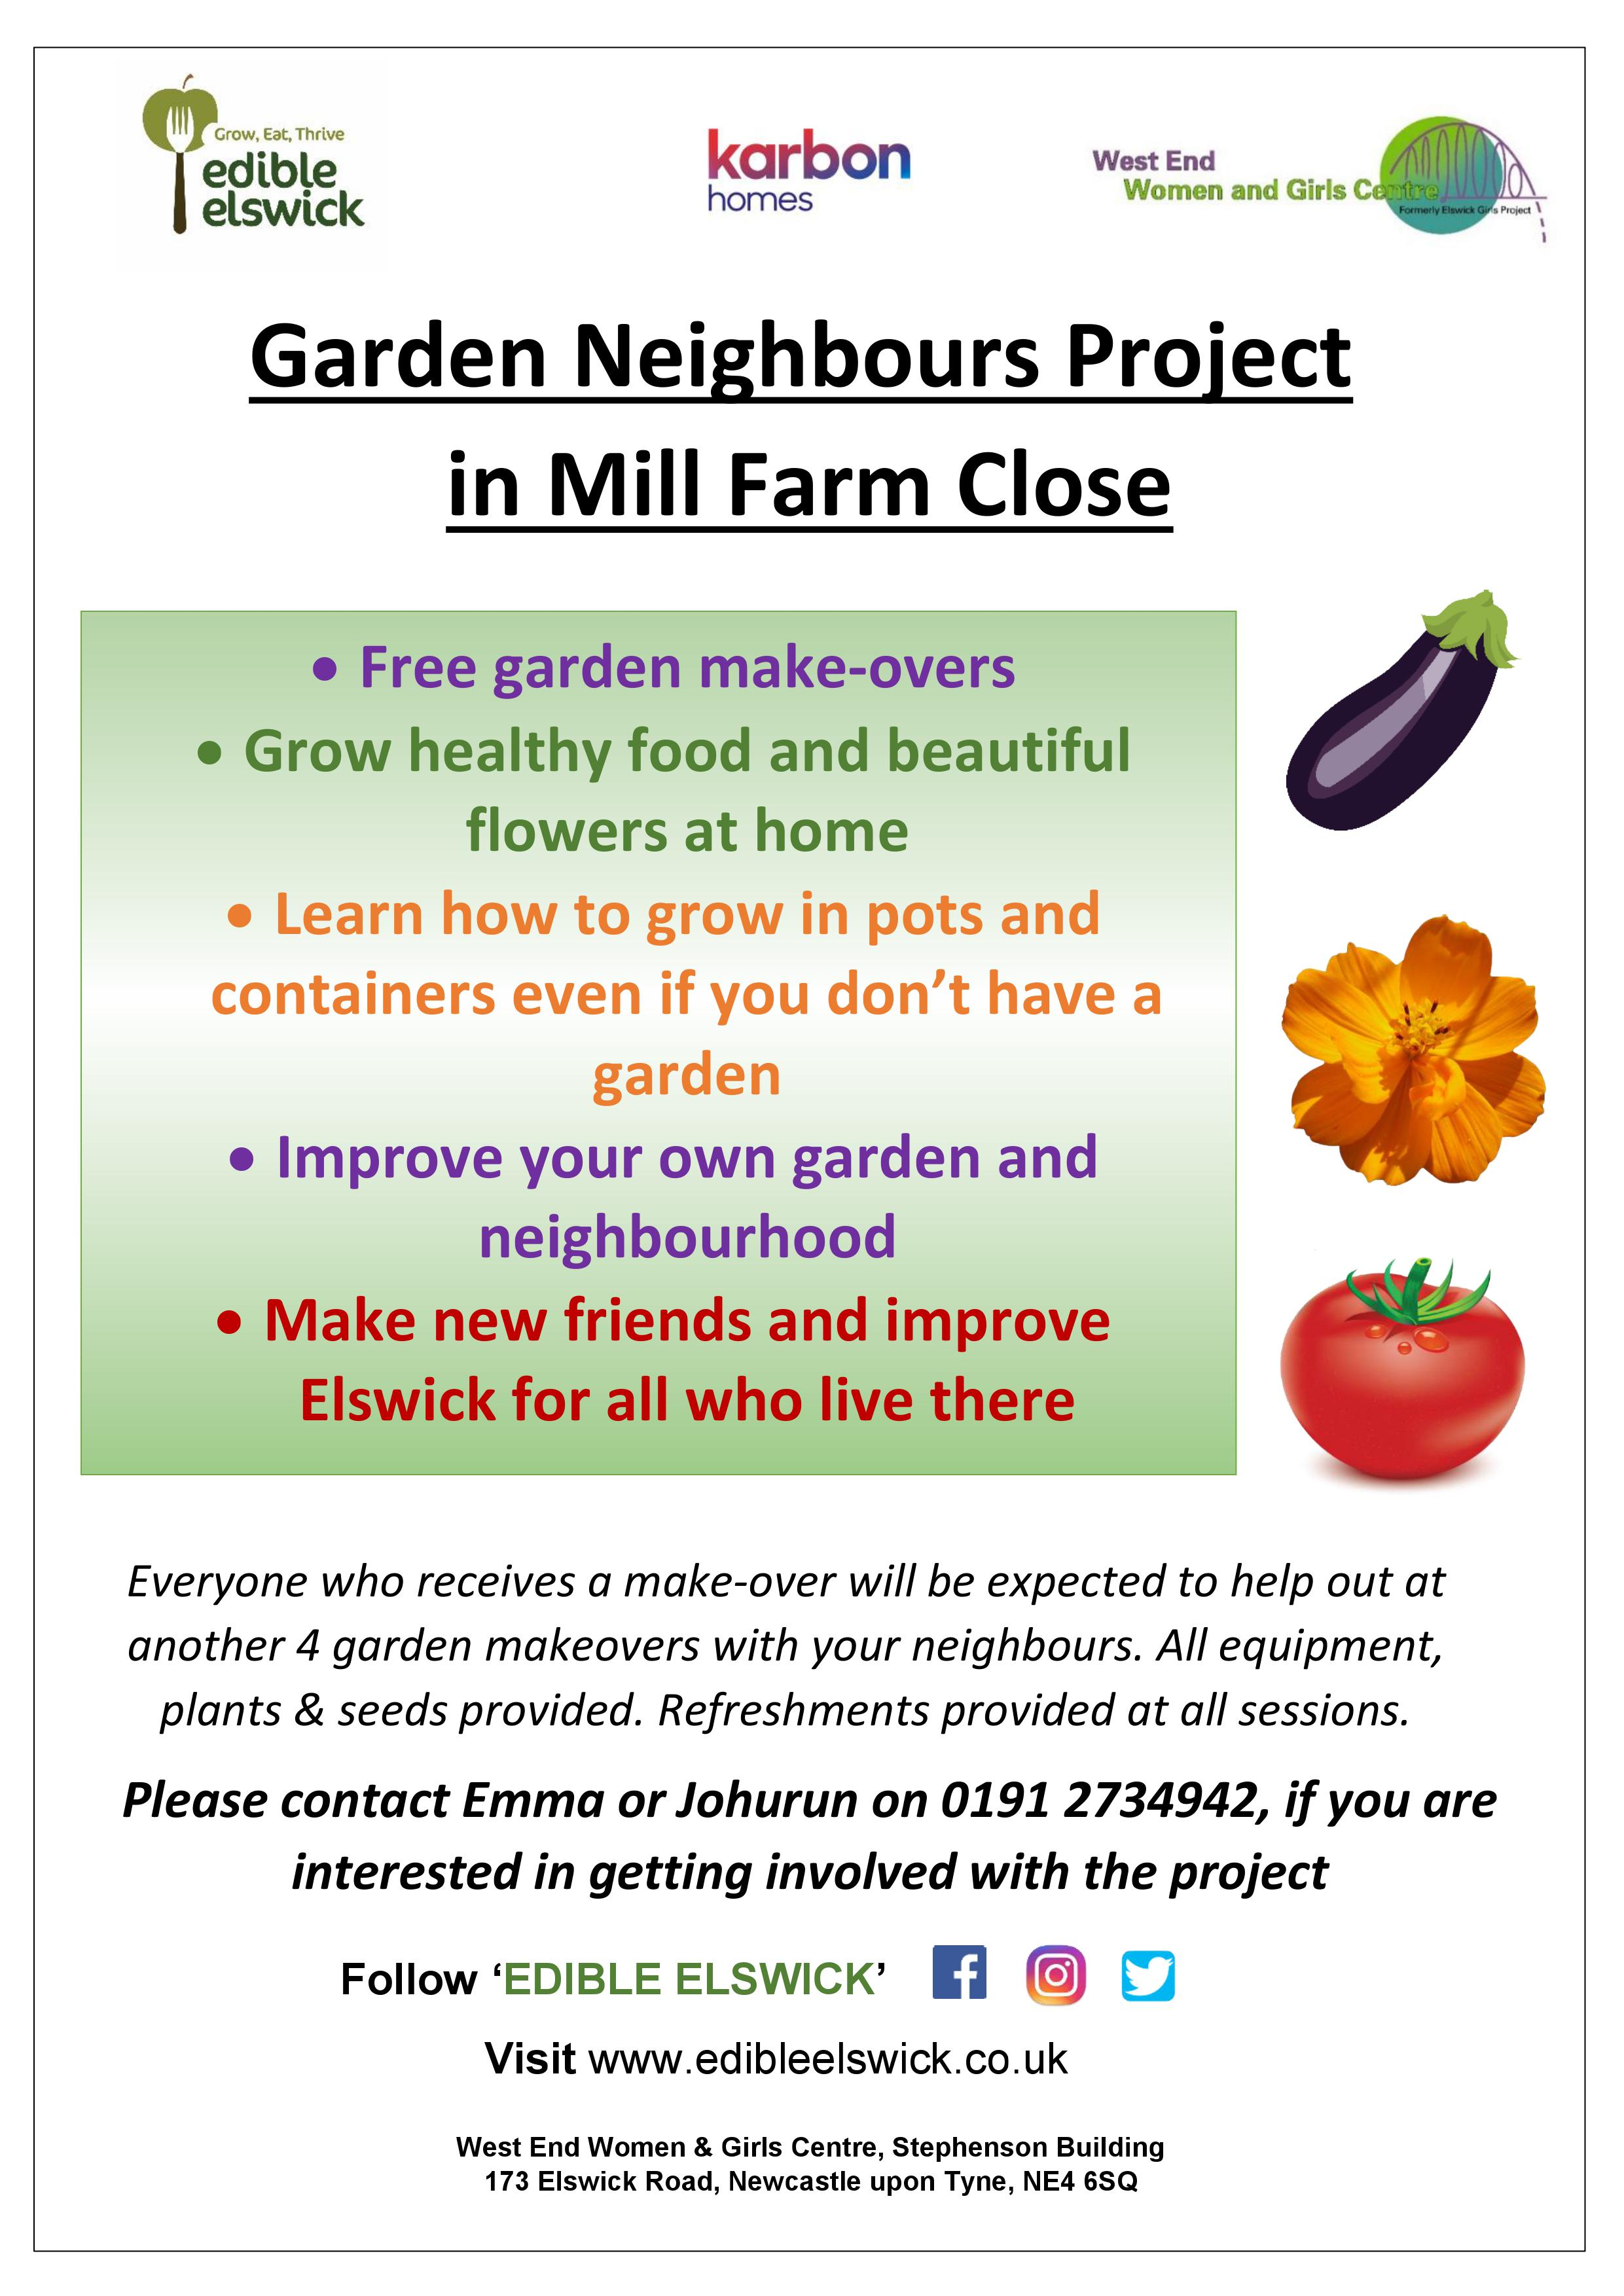 Garden Neighbours Weekly Sessions on Mill Farm Close and Elswick - Every Monday 10am-12pm (except Bank Holidays). Sessions running until Monday 16th July. West End residents are welcome to come along and help others with their gardens on Mill Farm Close and other locations in Elswick, at fun sessions! Mini garden makeovers can include digging over beds, planting new flowers, freshening up hanging baskets, general tidy and more.Have a laugh, get to know others and help make a big difference in a short space of time! If you'd like to find out more, get in touch with Emma or Johurun via email hello@edibleelswick.co.uk or call 0191 2734942.